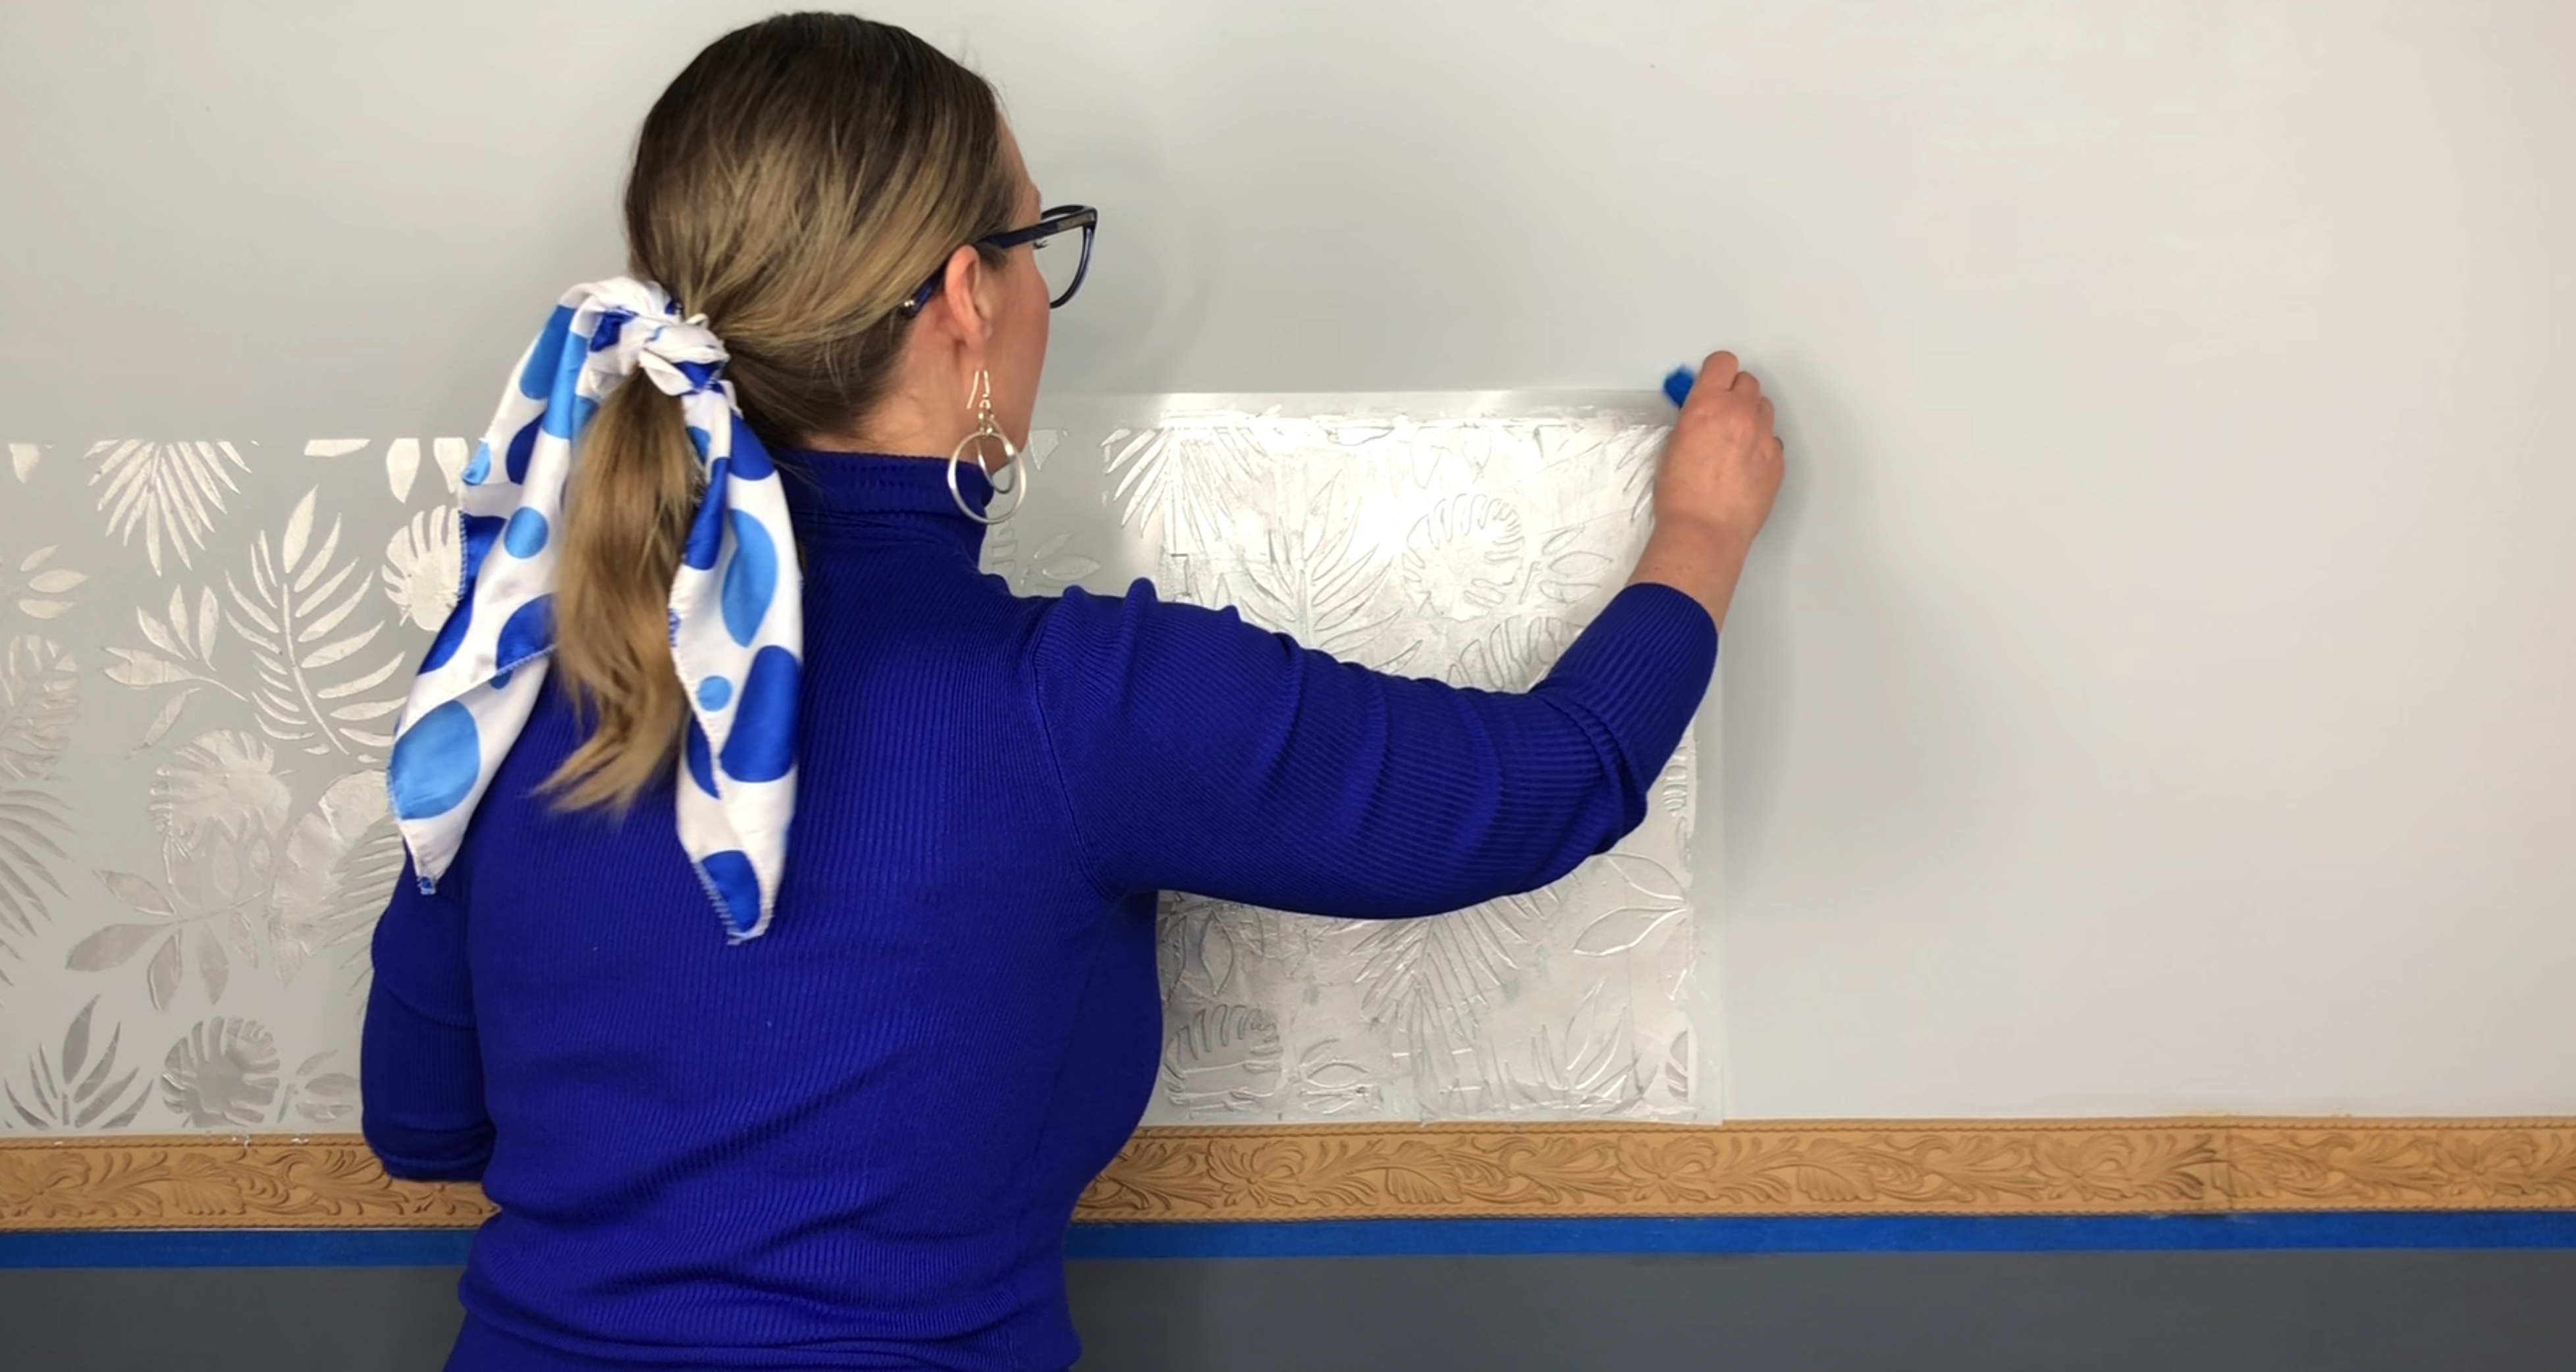 a woman in blue removing a stencil covered in silver paint revealing the leaf pattern underneath